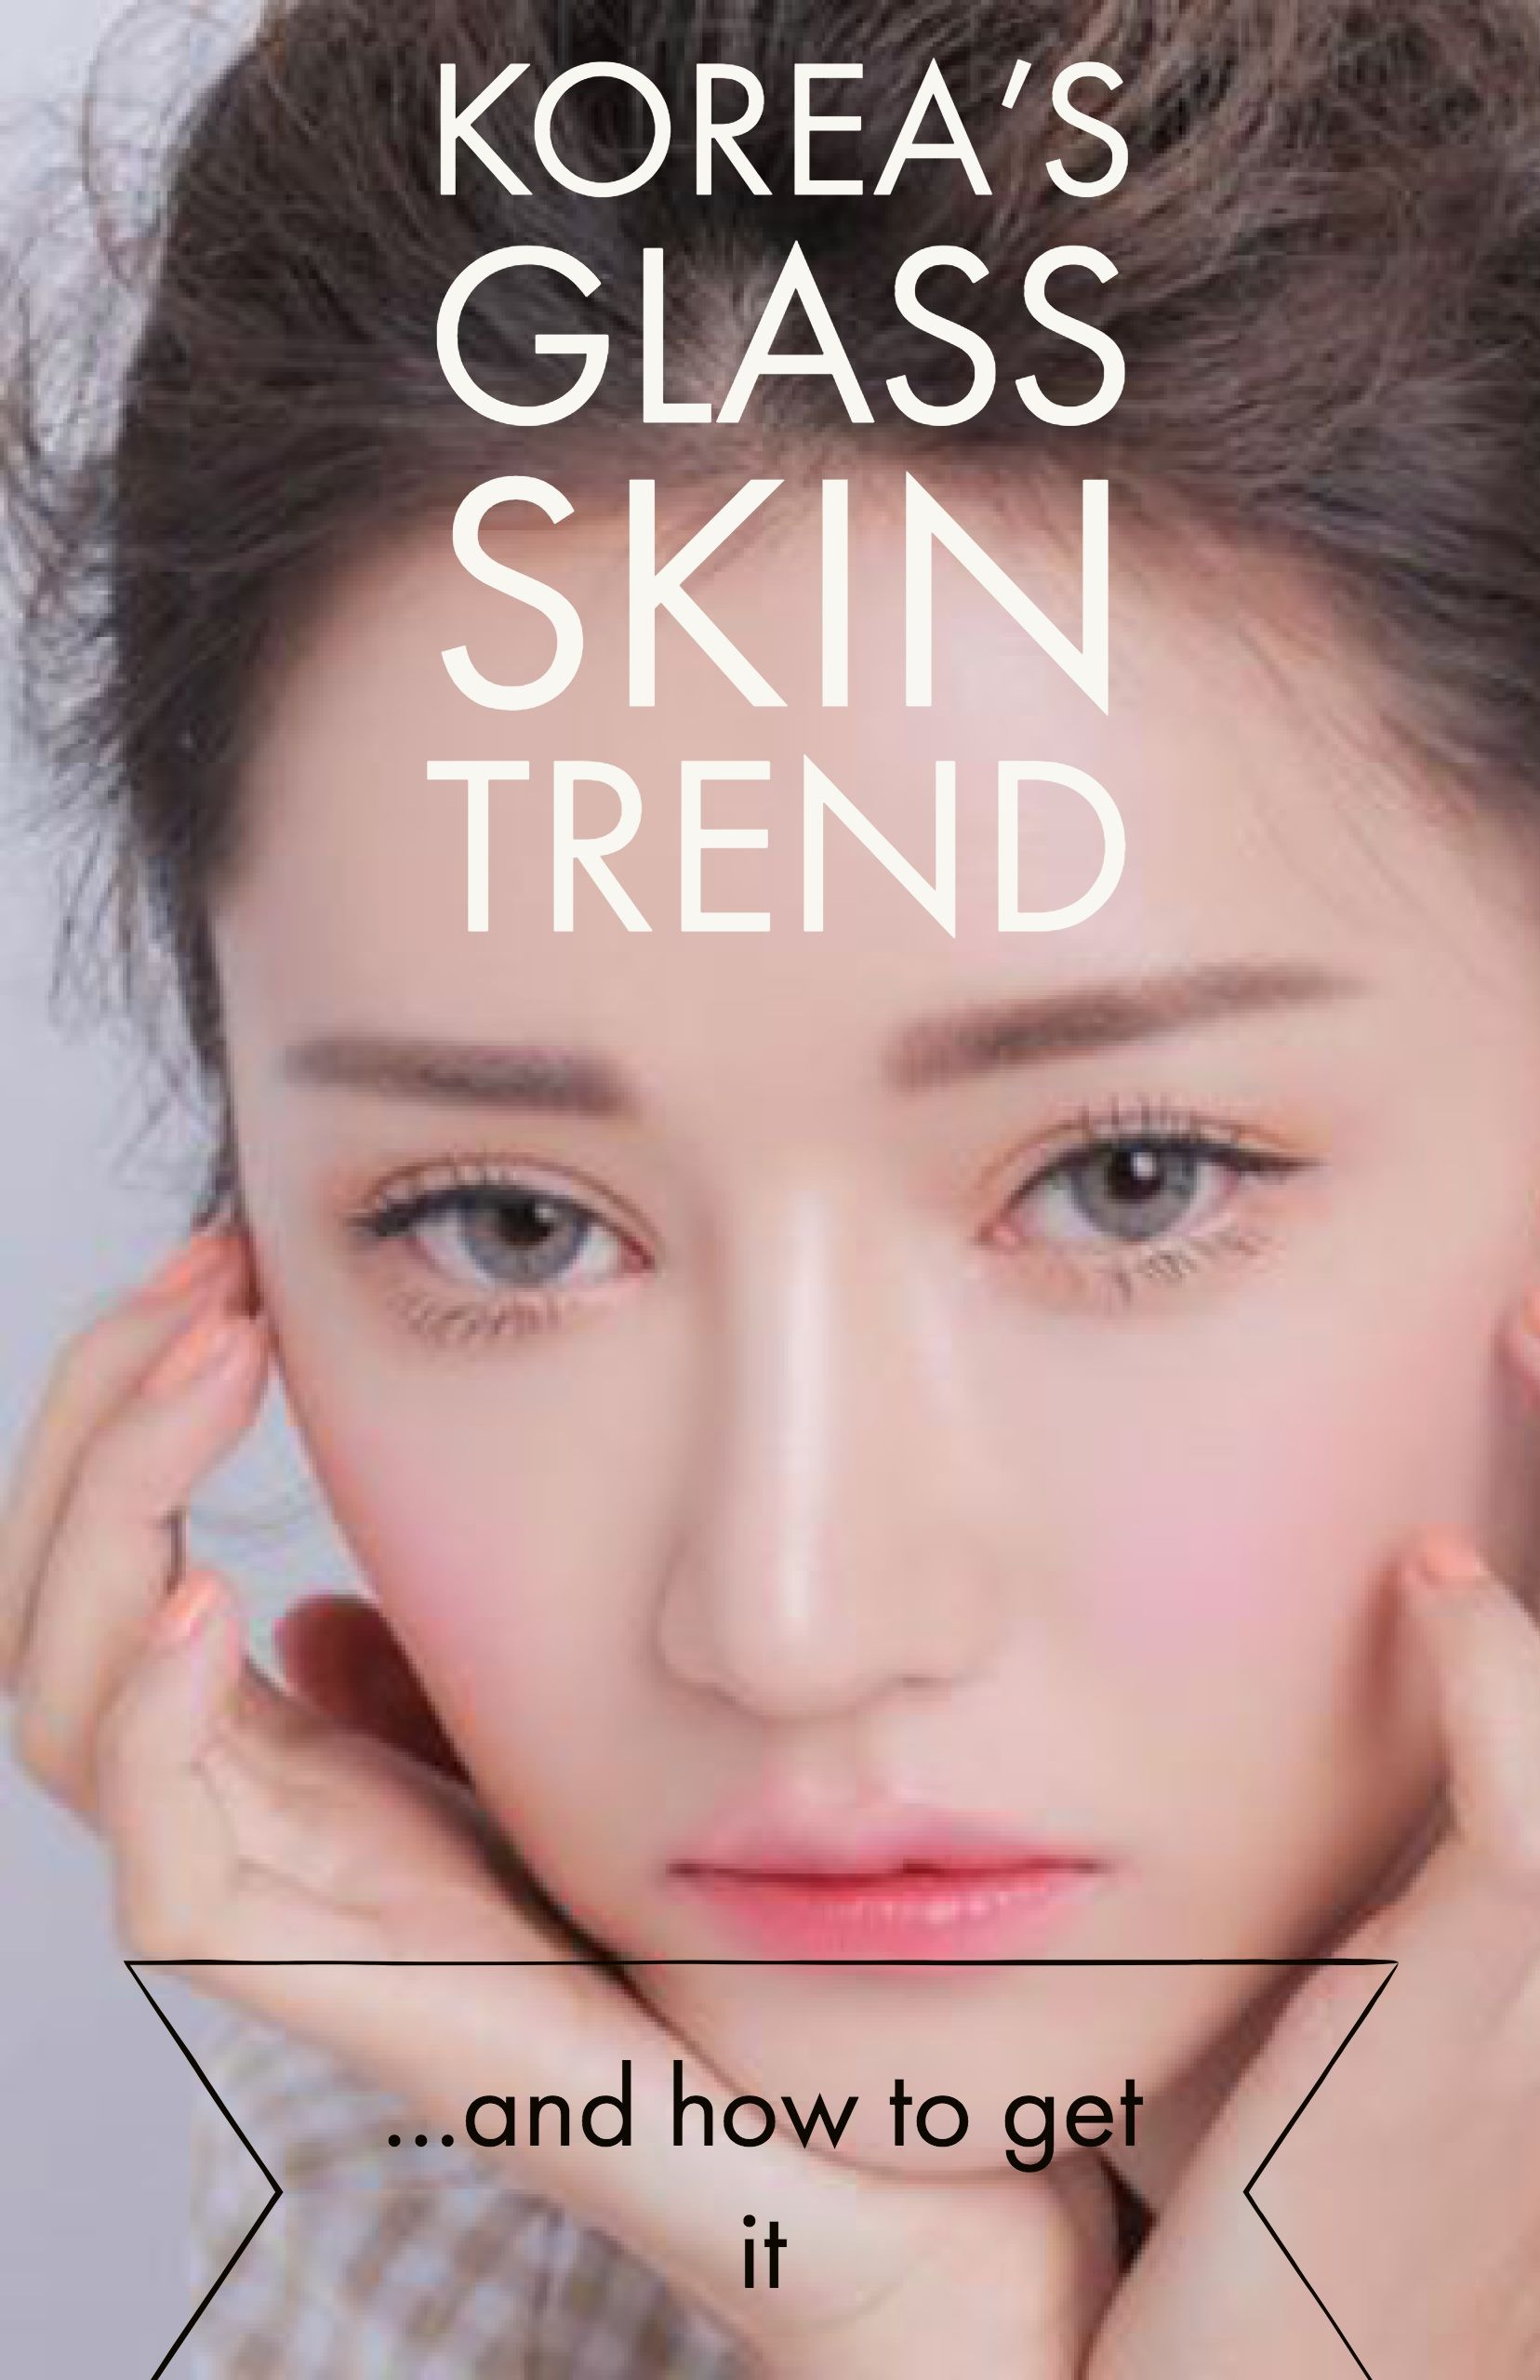 KOREA'S GLASS SKIN TREND AND HOW TO GET IT Glass skin